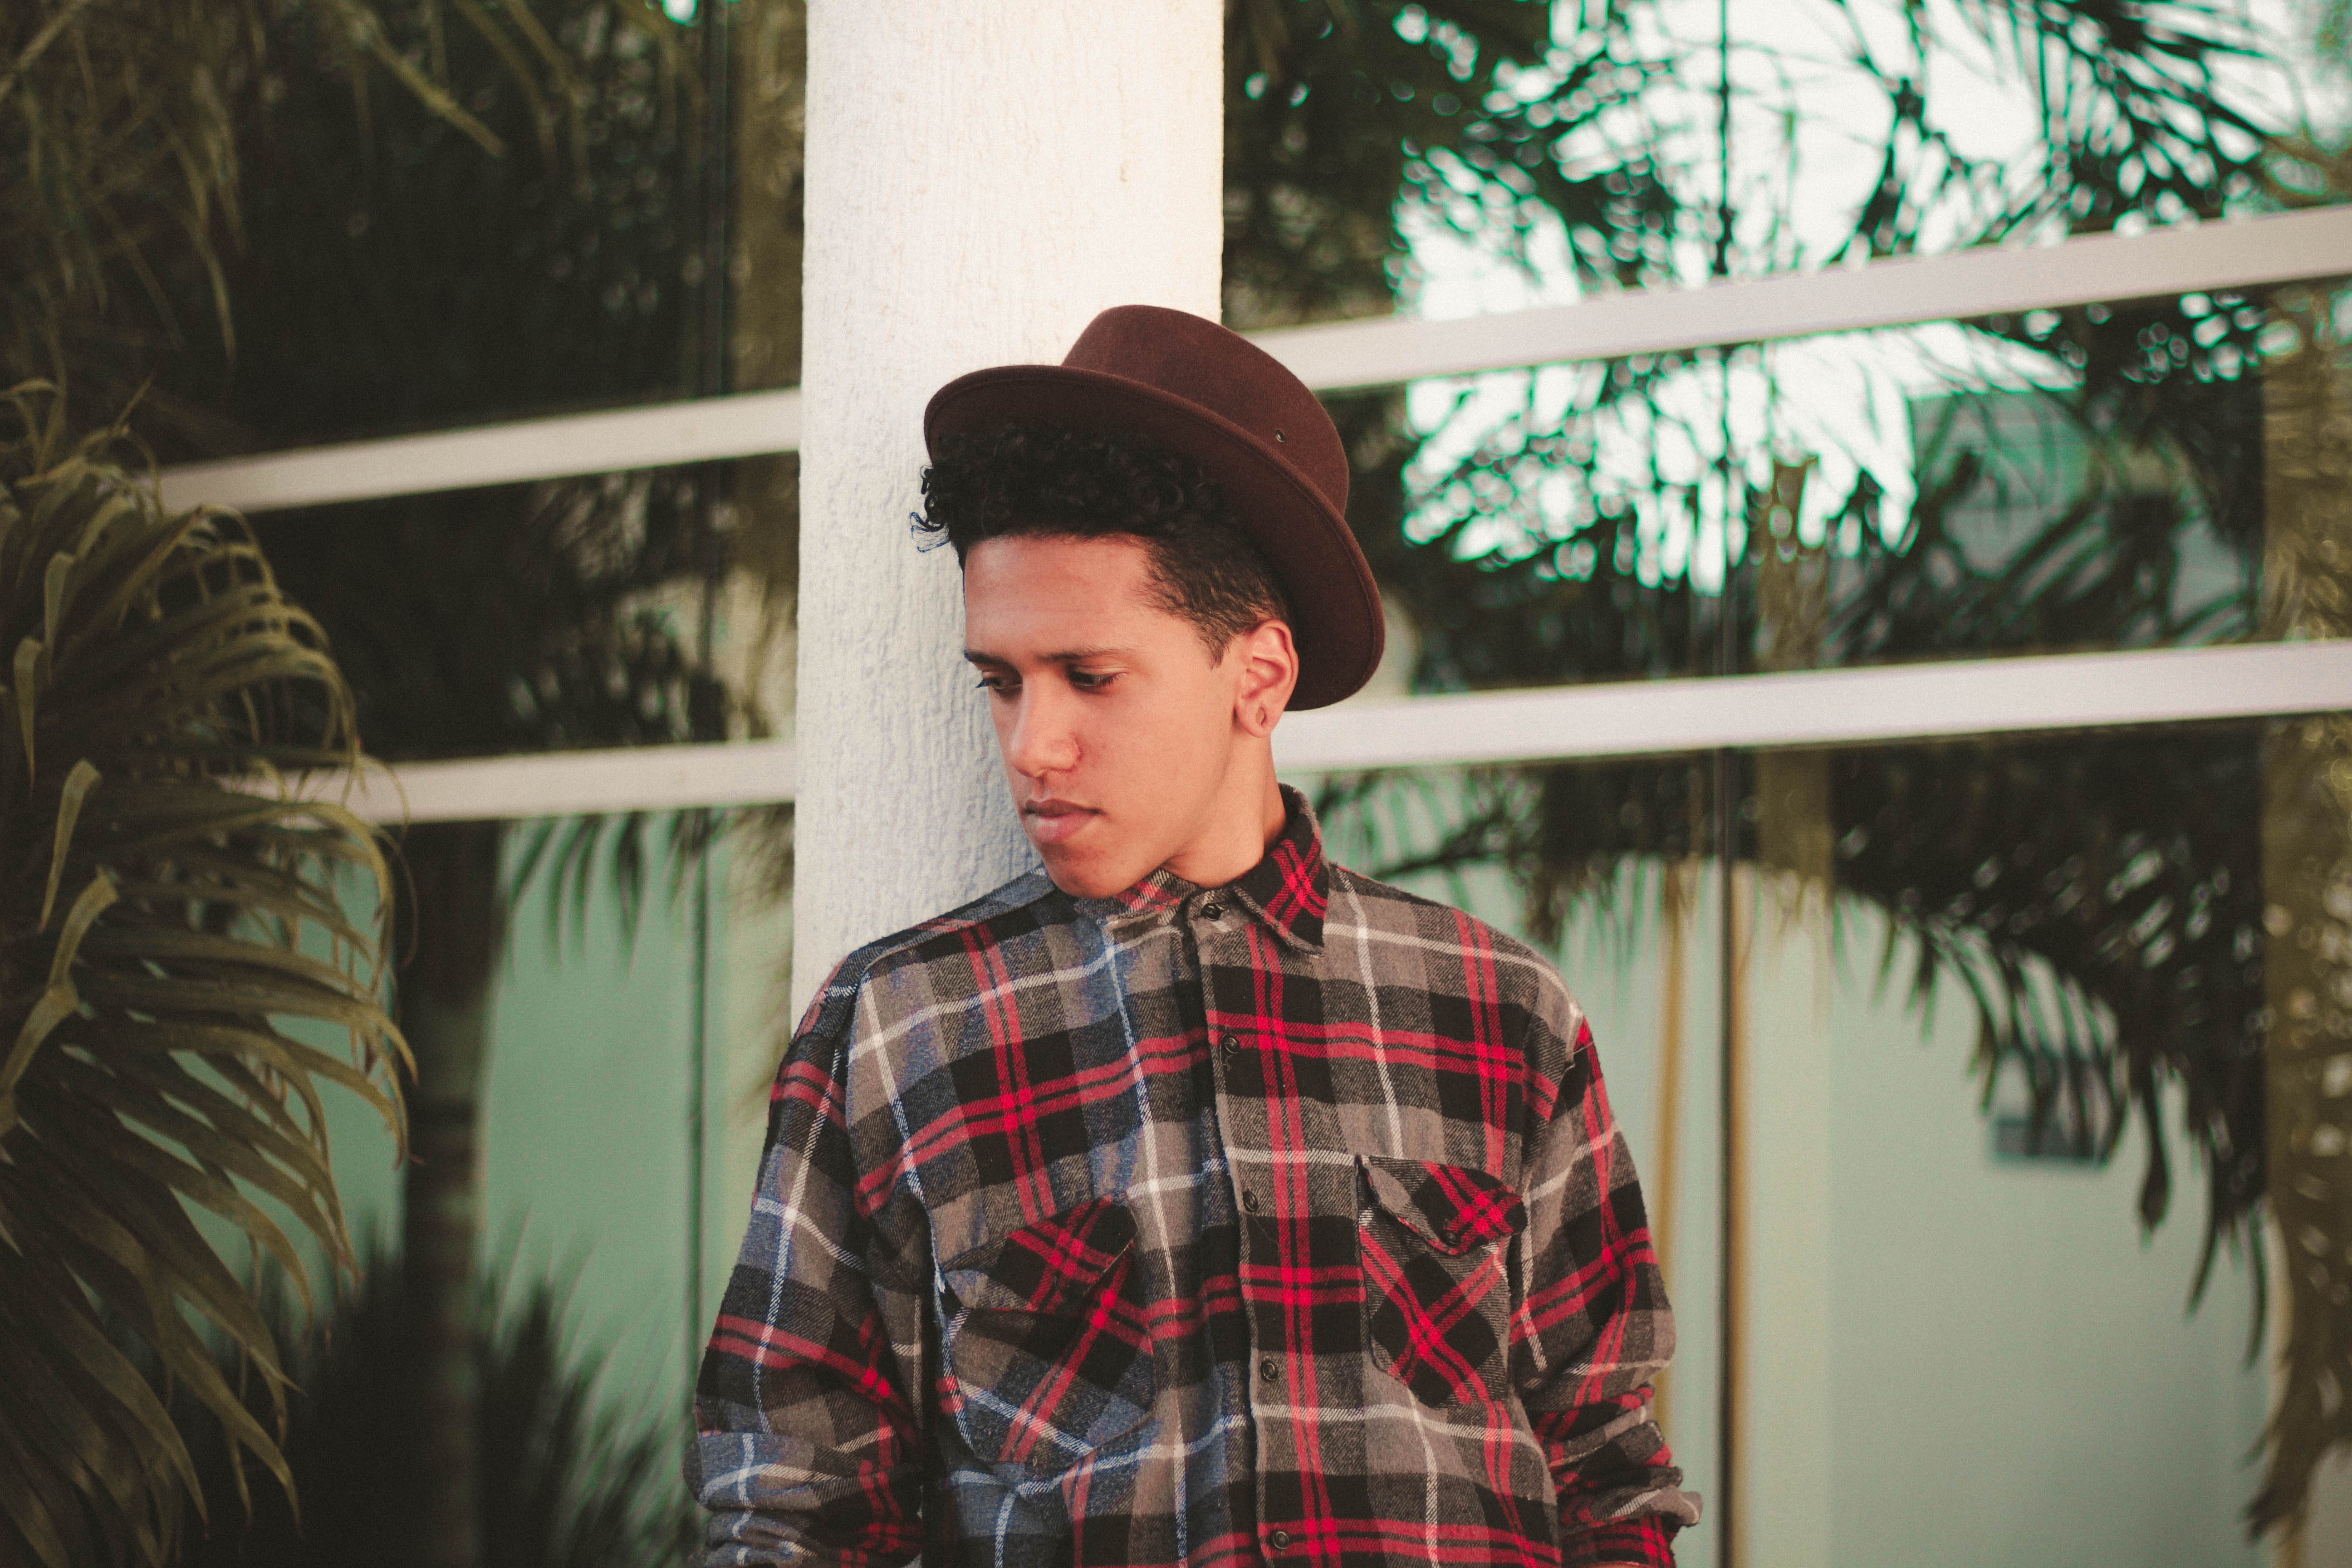 Trendy man with a hat and plaid shirt leaning against a railing